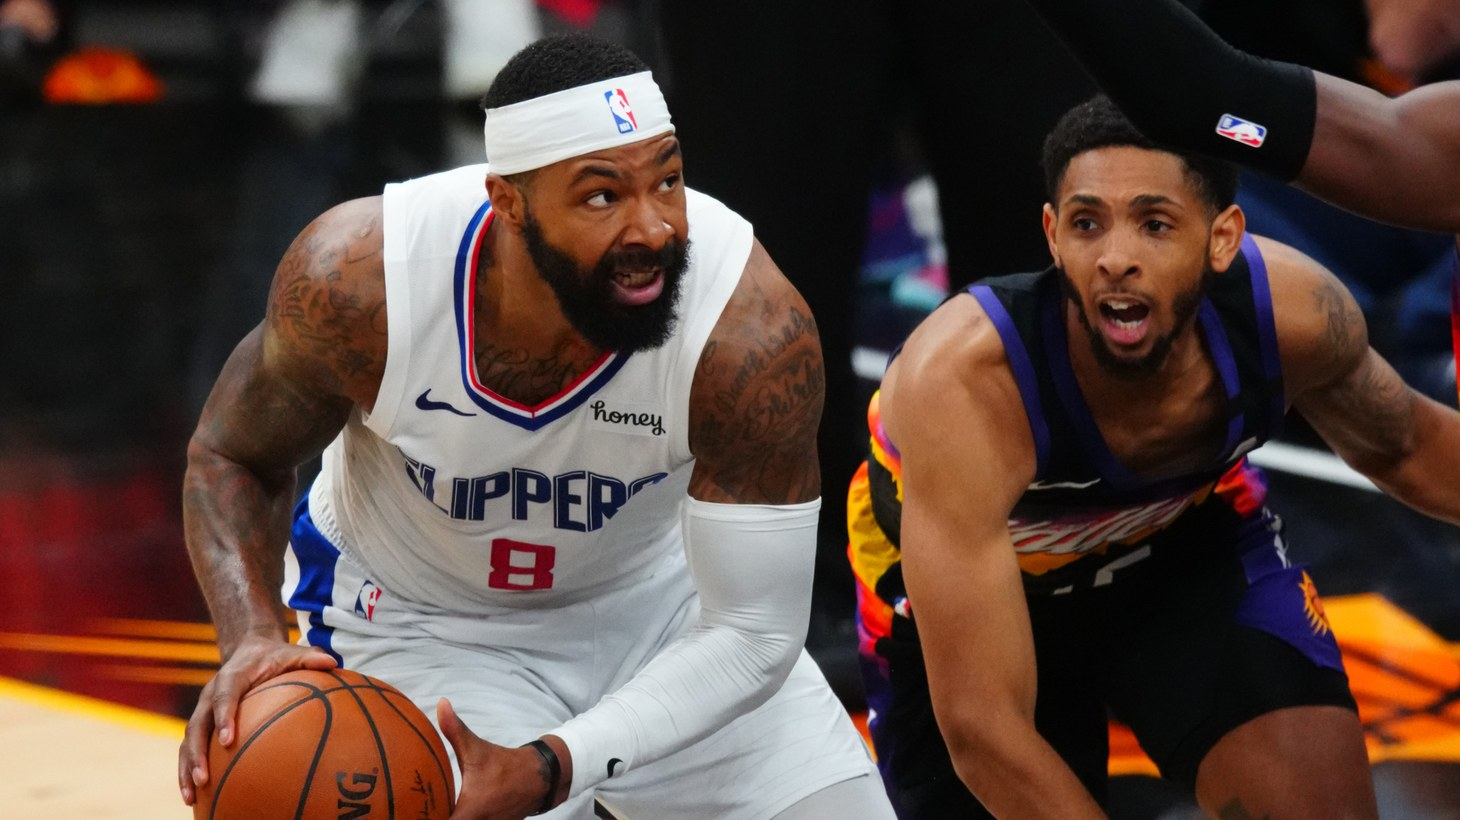 Los Angeles Clippers forward Marcus Morris Sr (8) goes against Phoenix Suns guard Cameron Payne in game five of the Western Conference Finals for the 2021 NBA Playoffs at Phoenix Suns Arena.